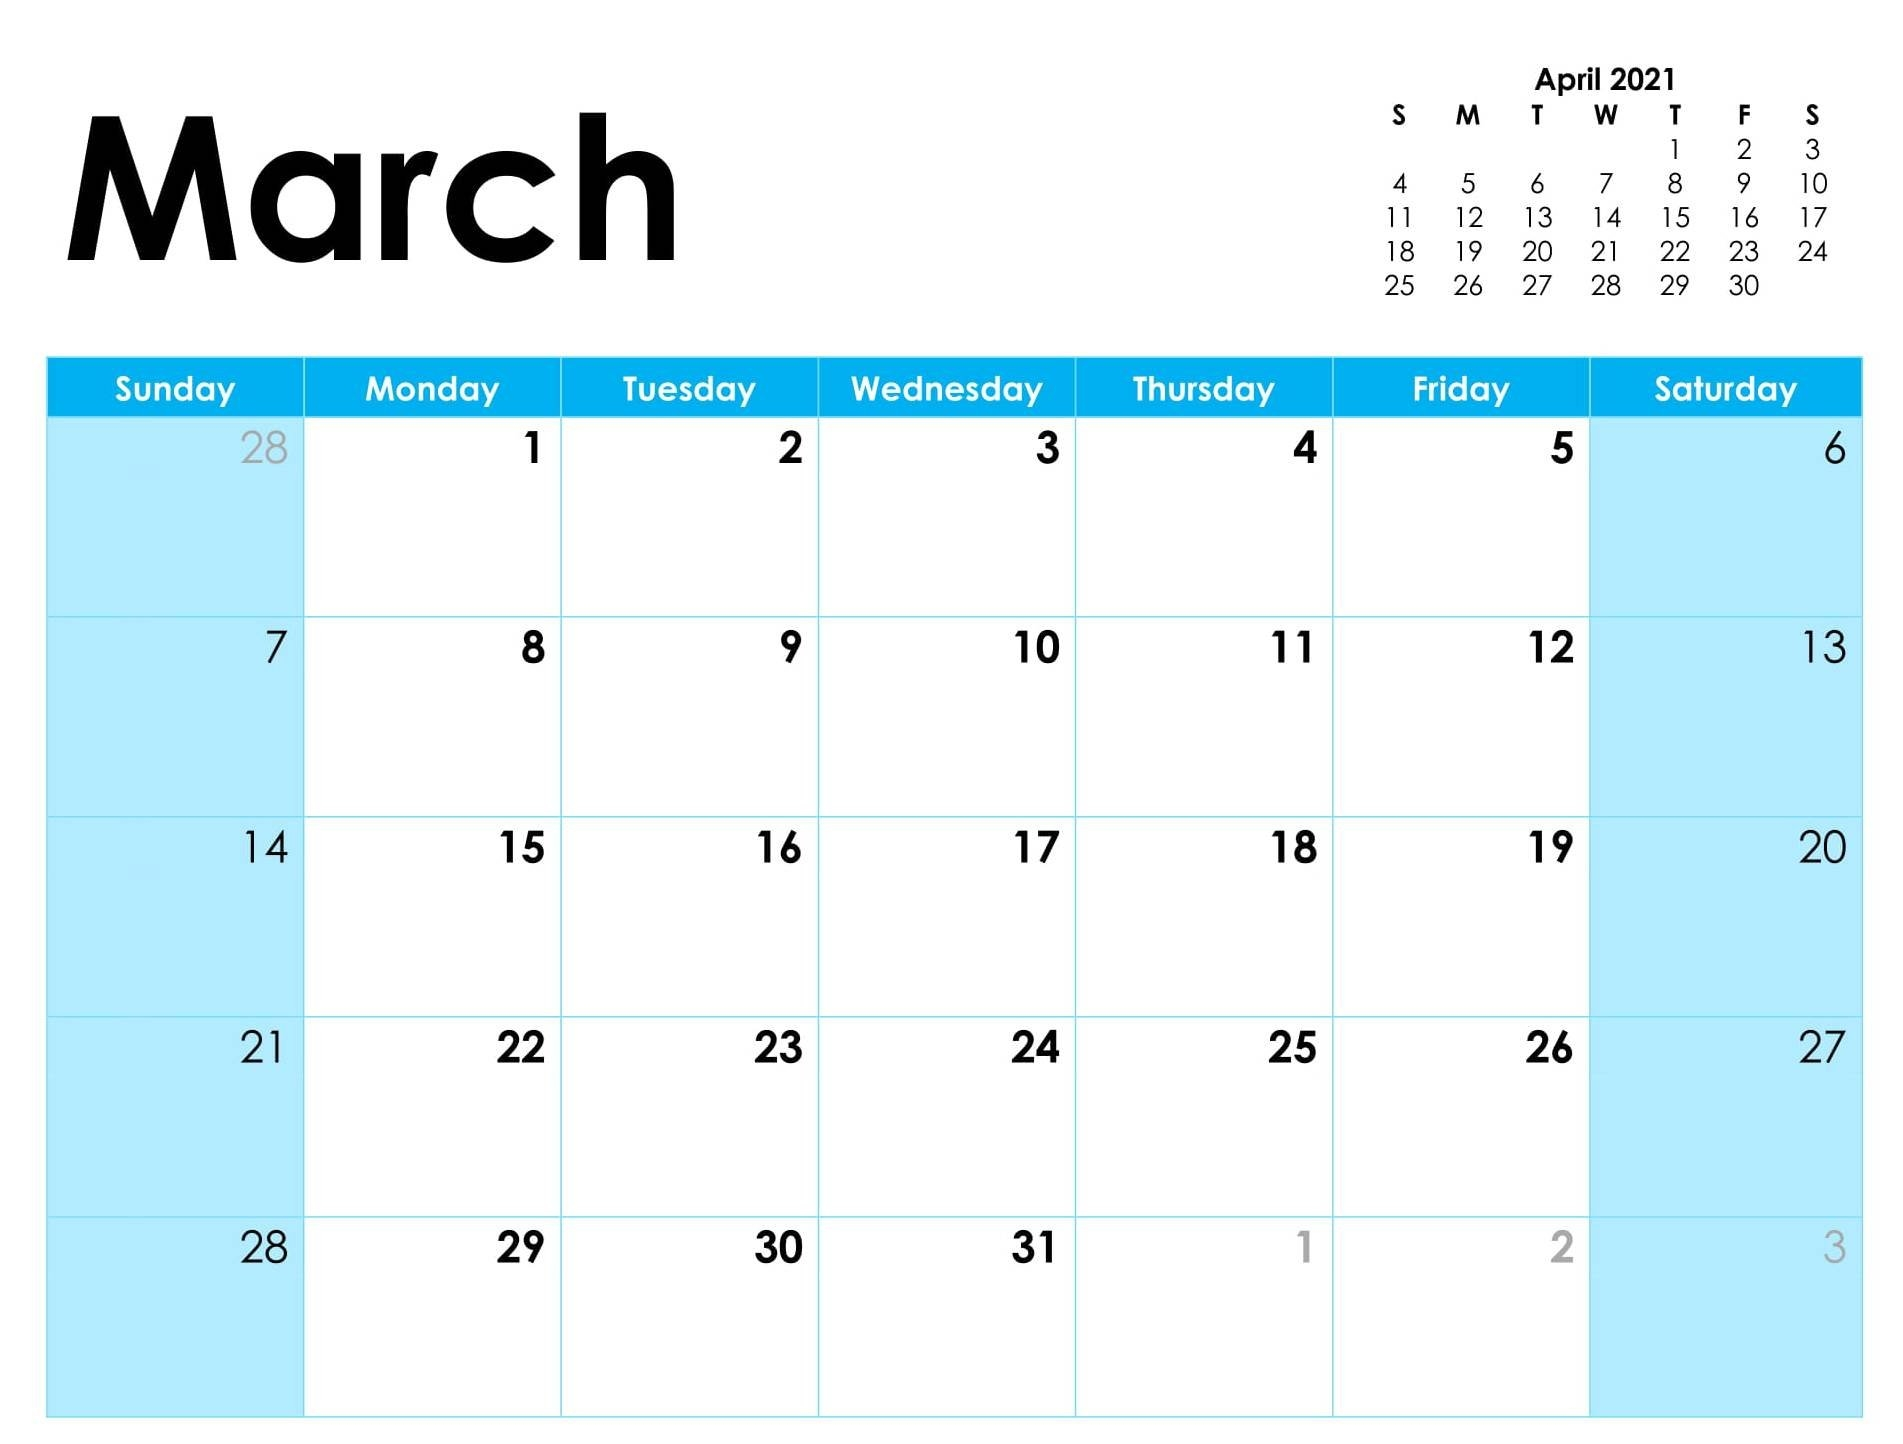 Free Calendar For March 2021 Template   Free Printable Calendar Shop inside Free Printable Calendar 2021 Daily